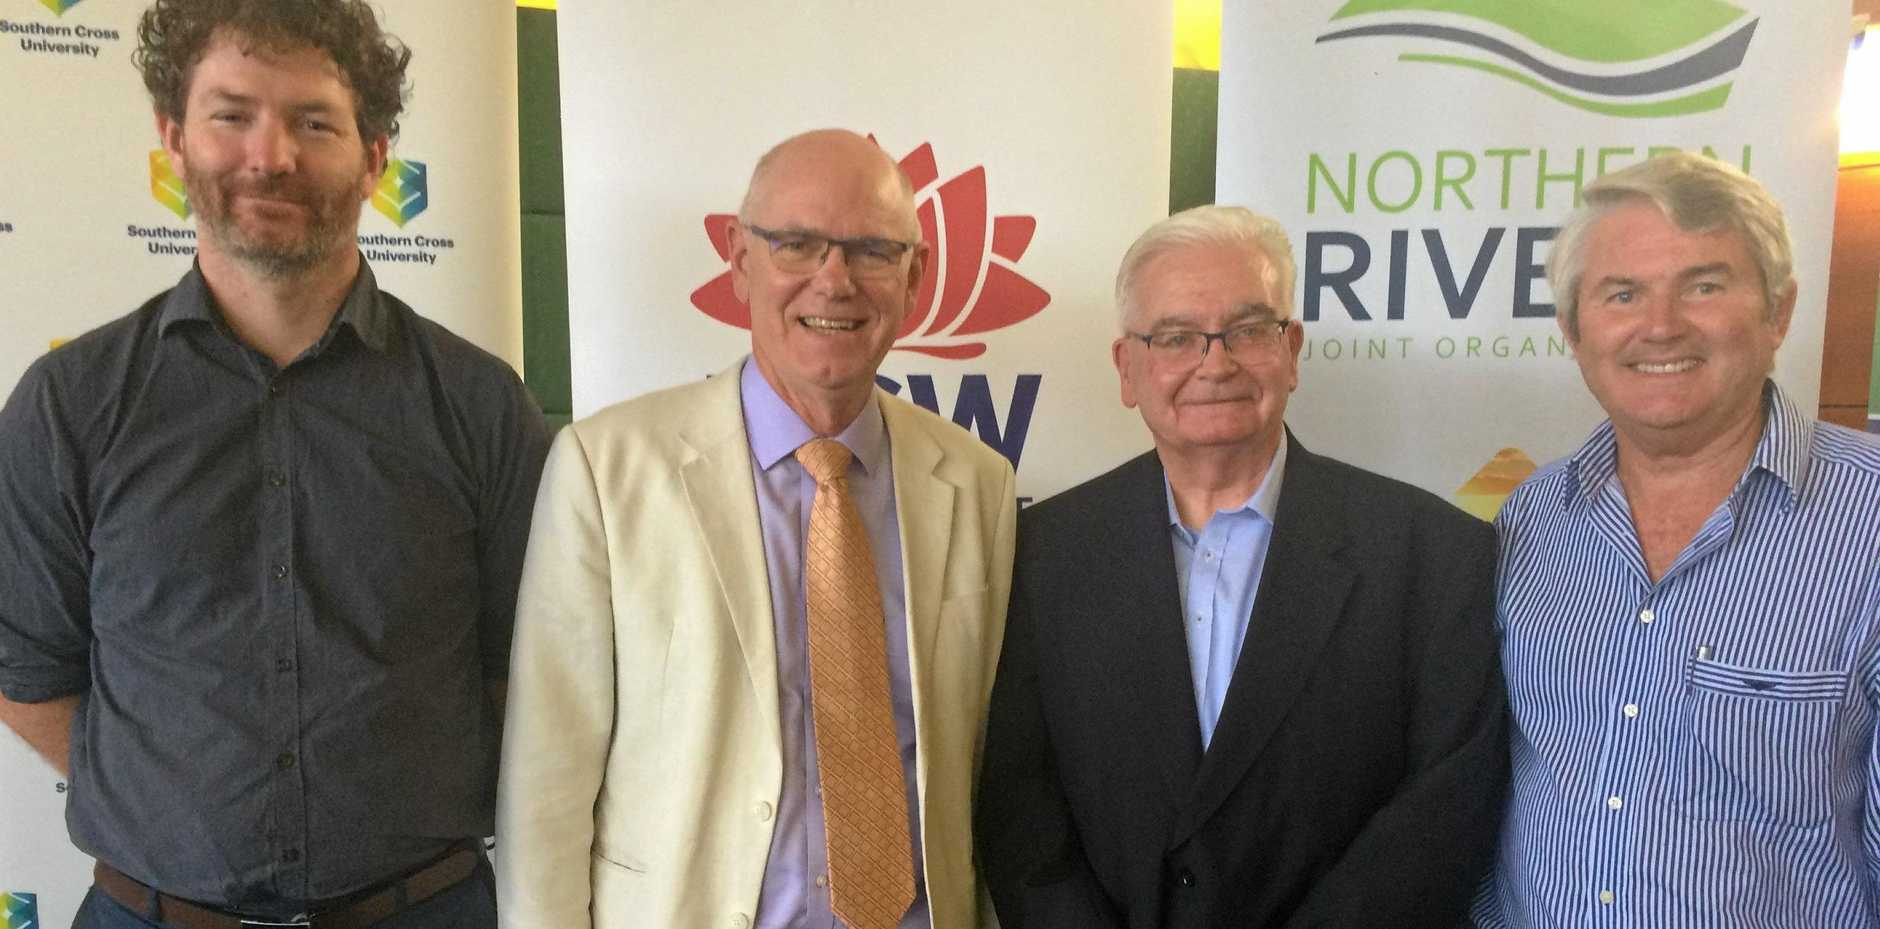 At the launch of the NSW Northern Rivers Region Freight and Supply Chain Strategy was Southern Cross University's researcher Andrew Swan (left) and Dr Ken Doust, with Chris Sharpe managing director of Richmond Dairies and Don Page chair of Regional Development Australia (RDA) Northern Rivers.